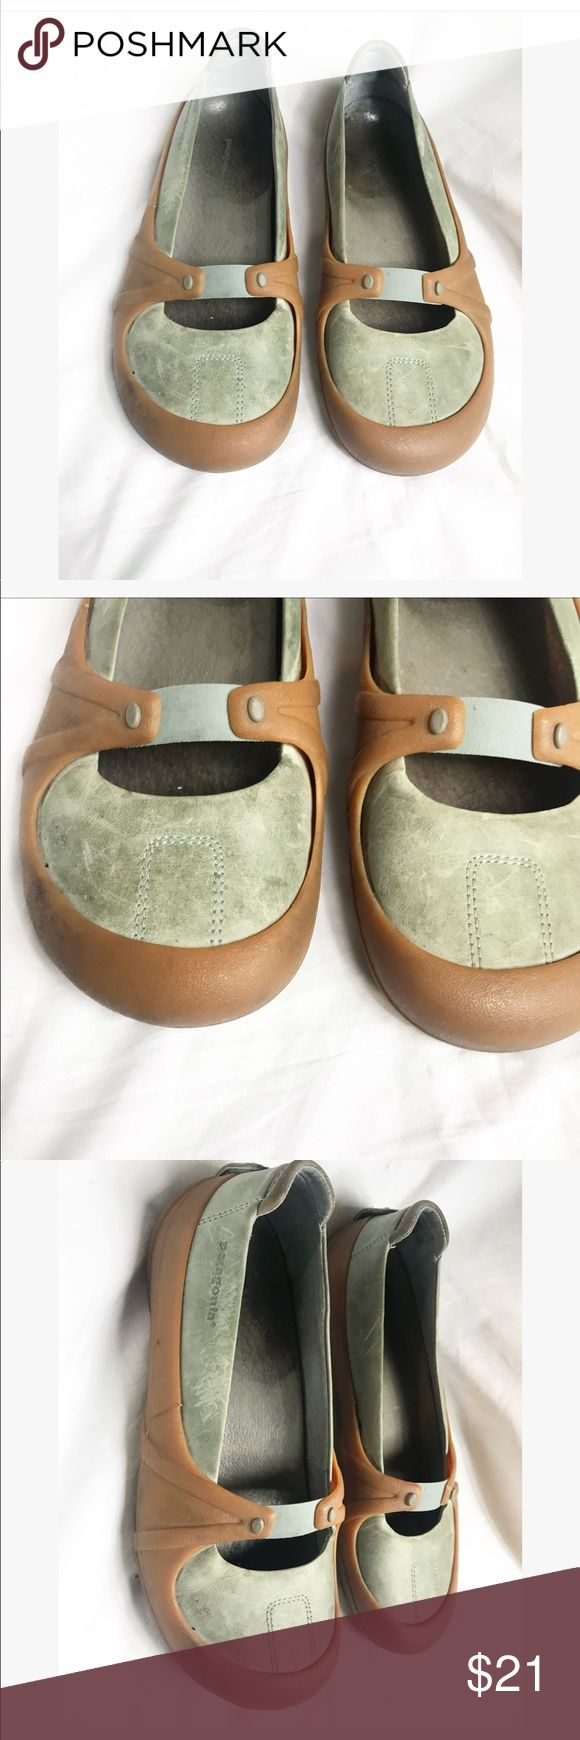 Patagonia | slip on shoes | green and brown Great slip on shoes . Used condition . Patagonia Shoes Sneakers